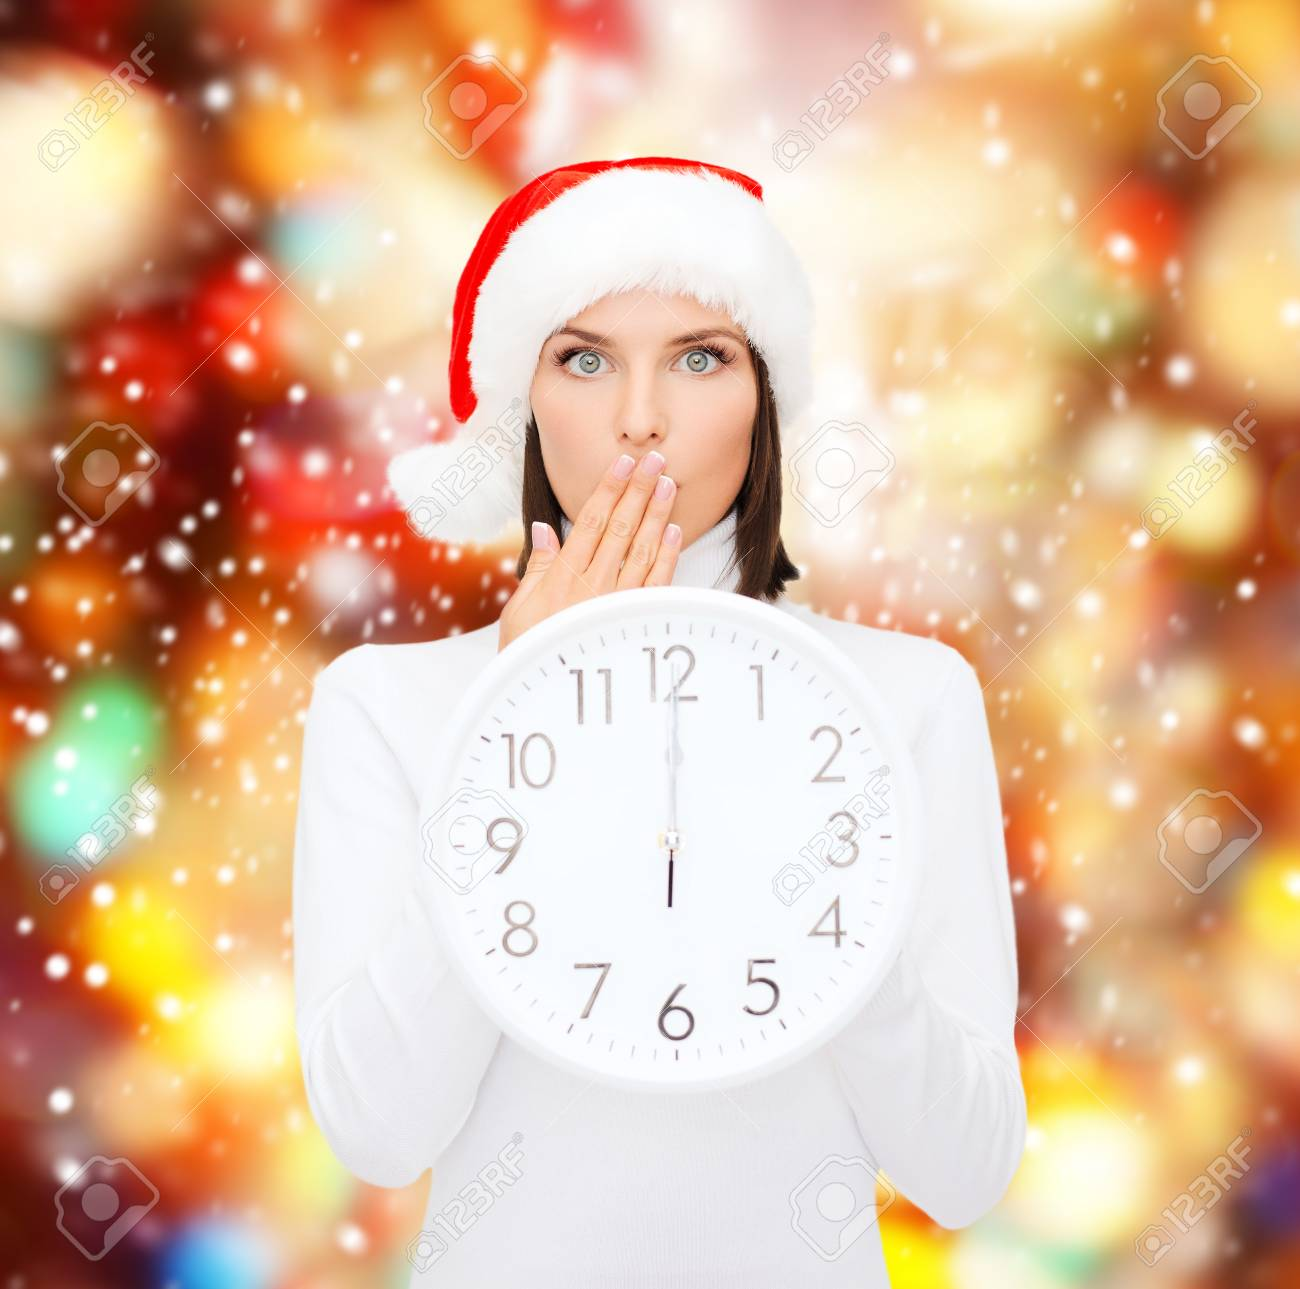 christmas, x-mas, winter, happiness concept - smiling woman in santa helper hat with clock showing 12 Stock Photo - 23317688